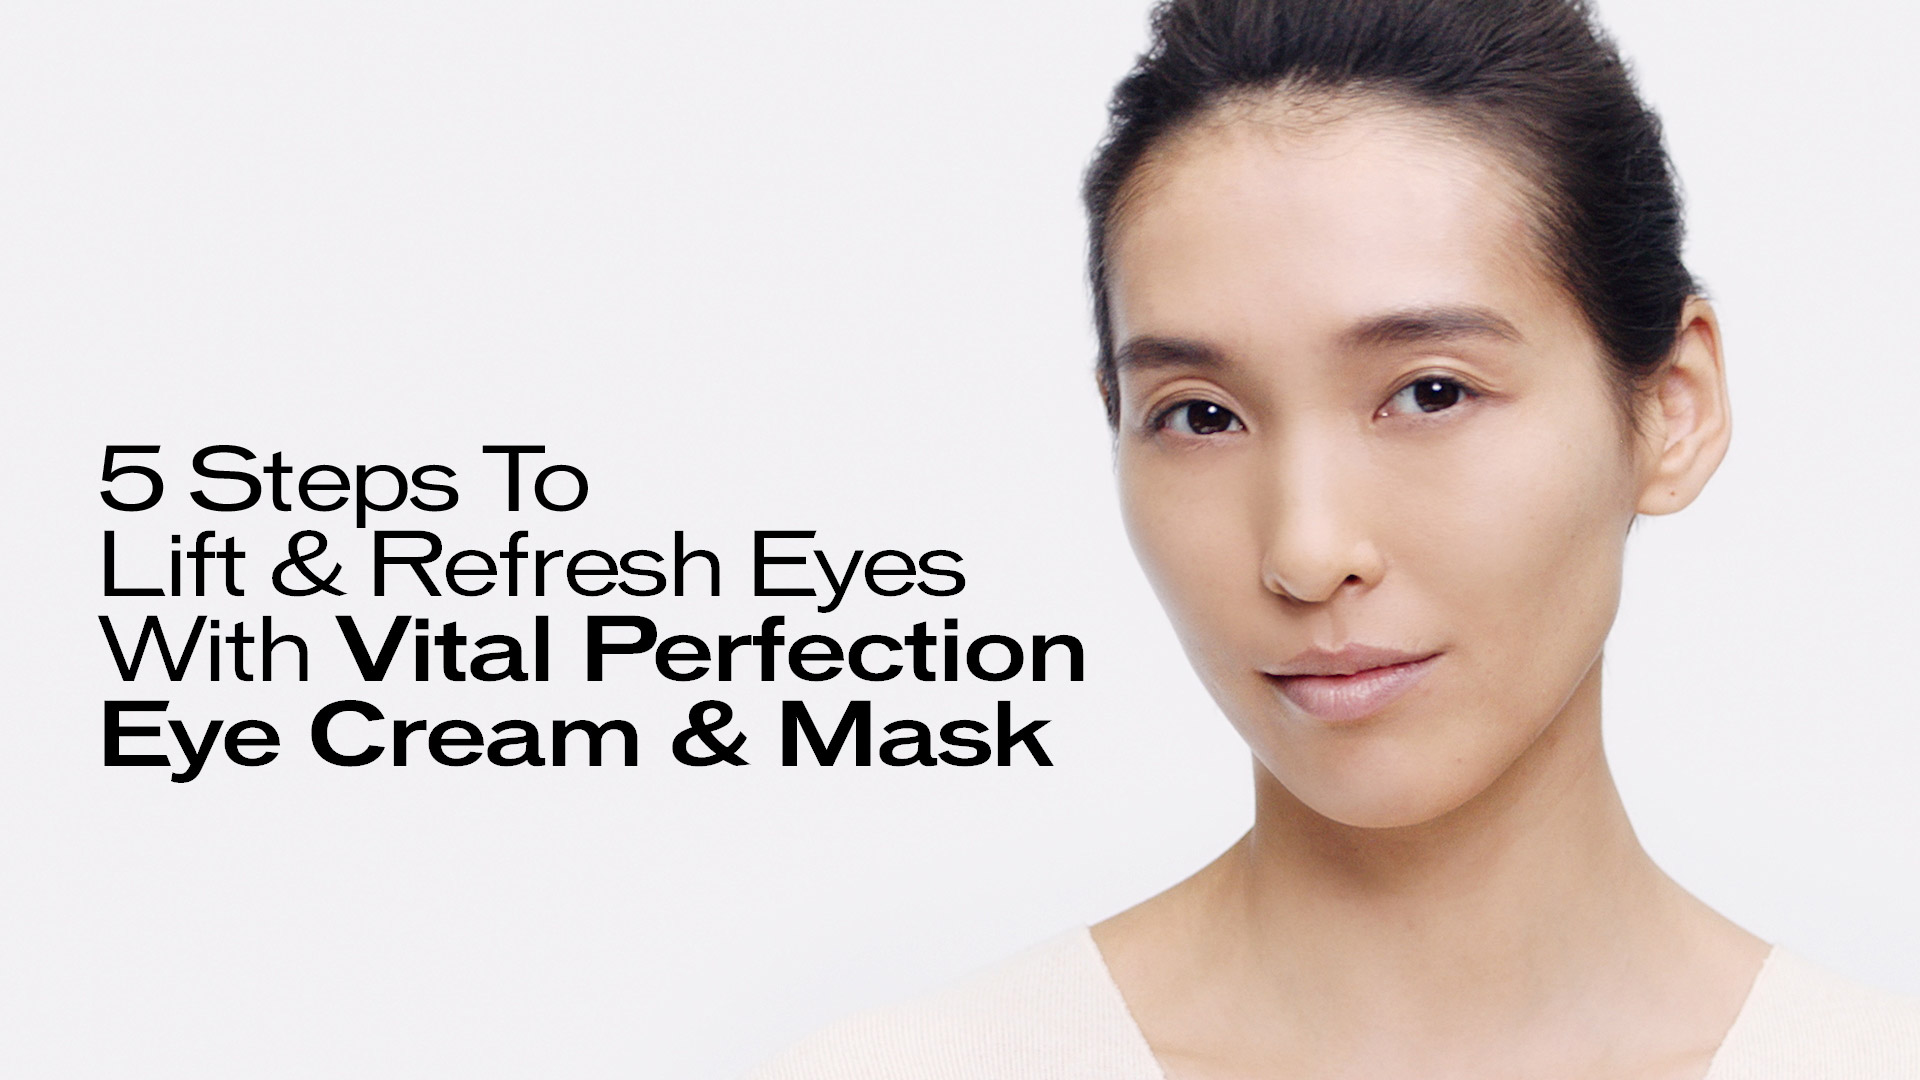 Vital Perfection Eye Care Regimen - Watch Now